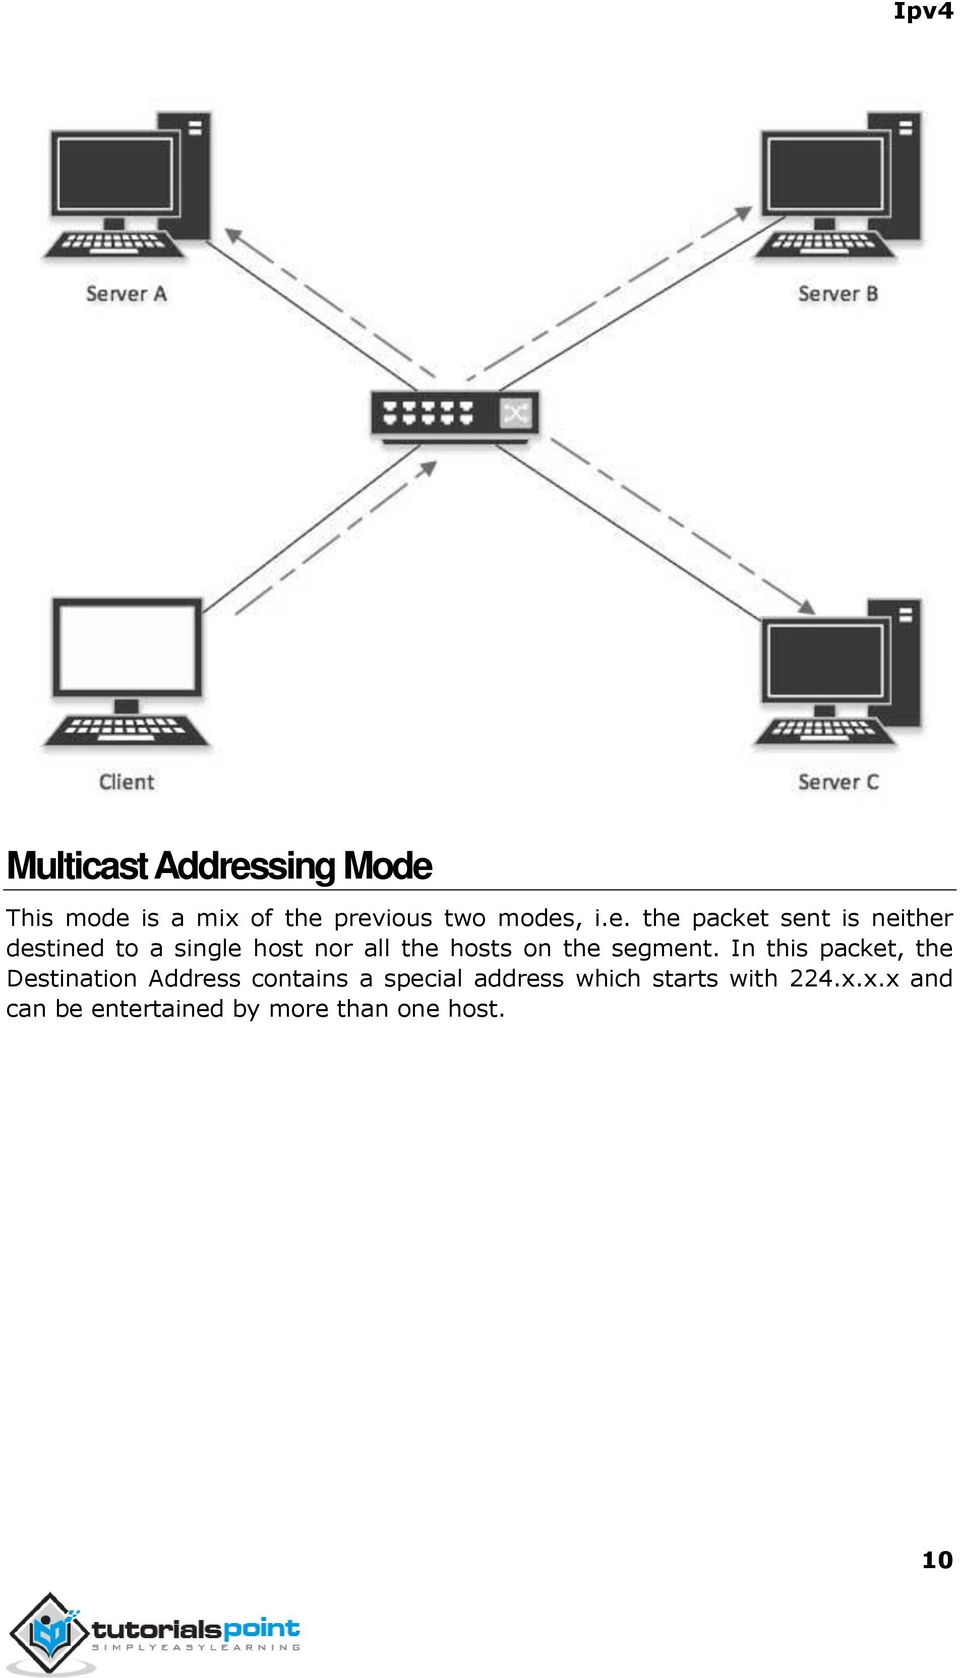 This tutorial will help you in understanding IPv4 and its